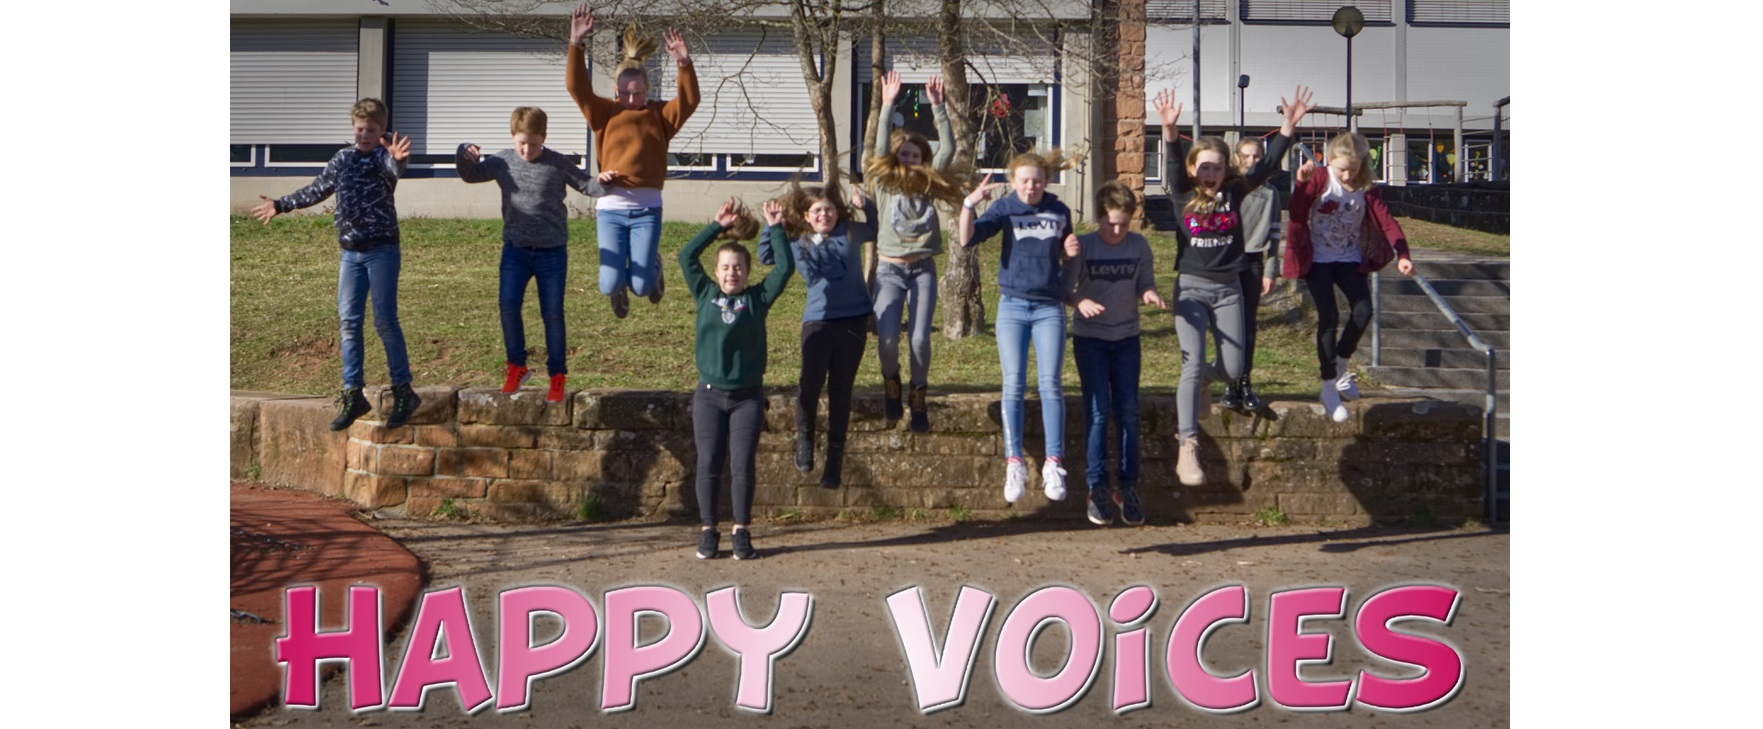 HappyVoices-2019-1